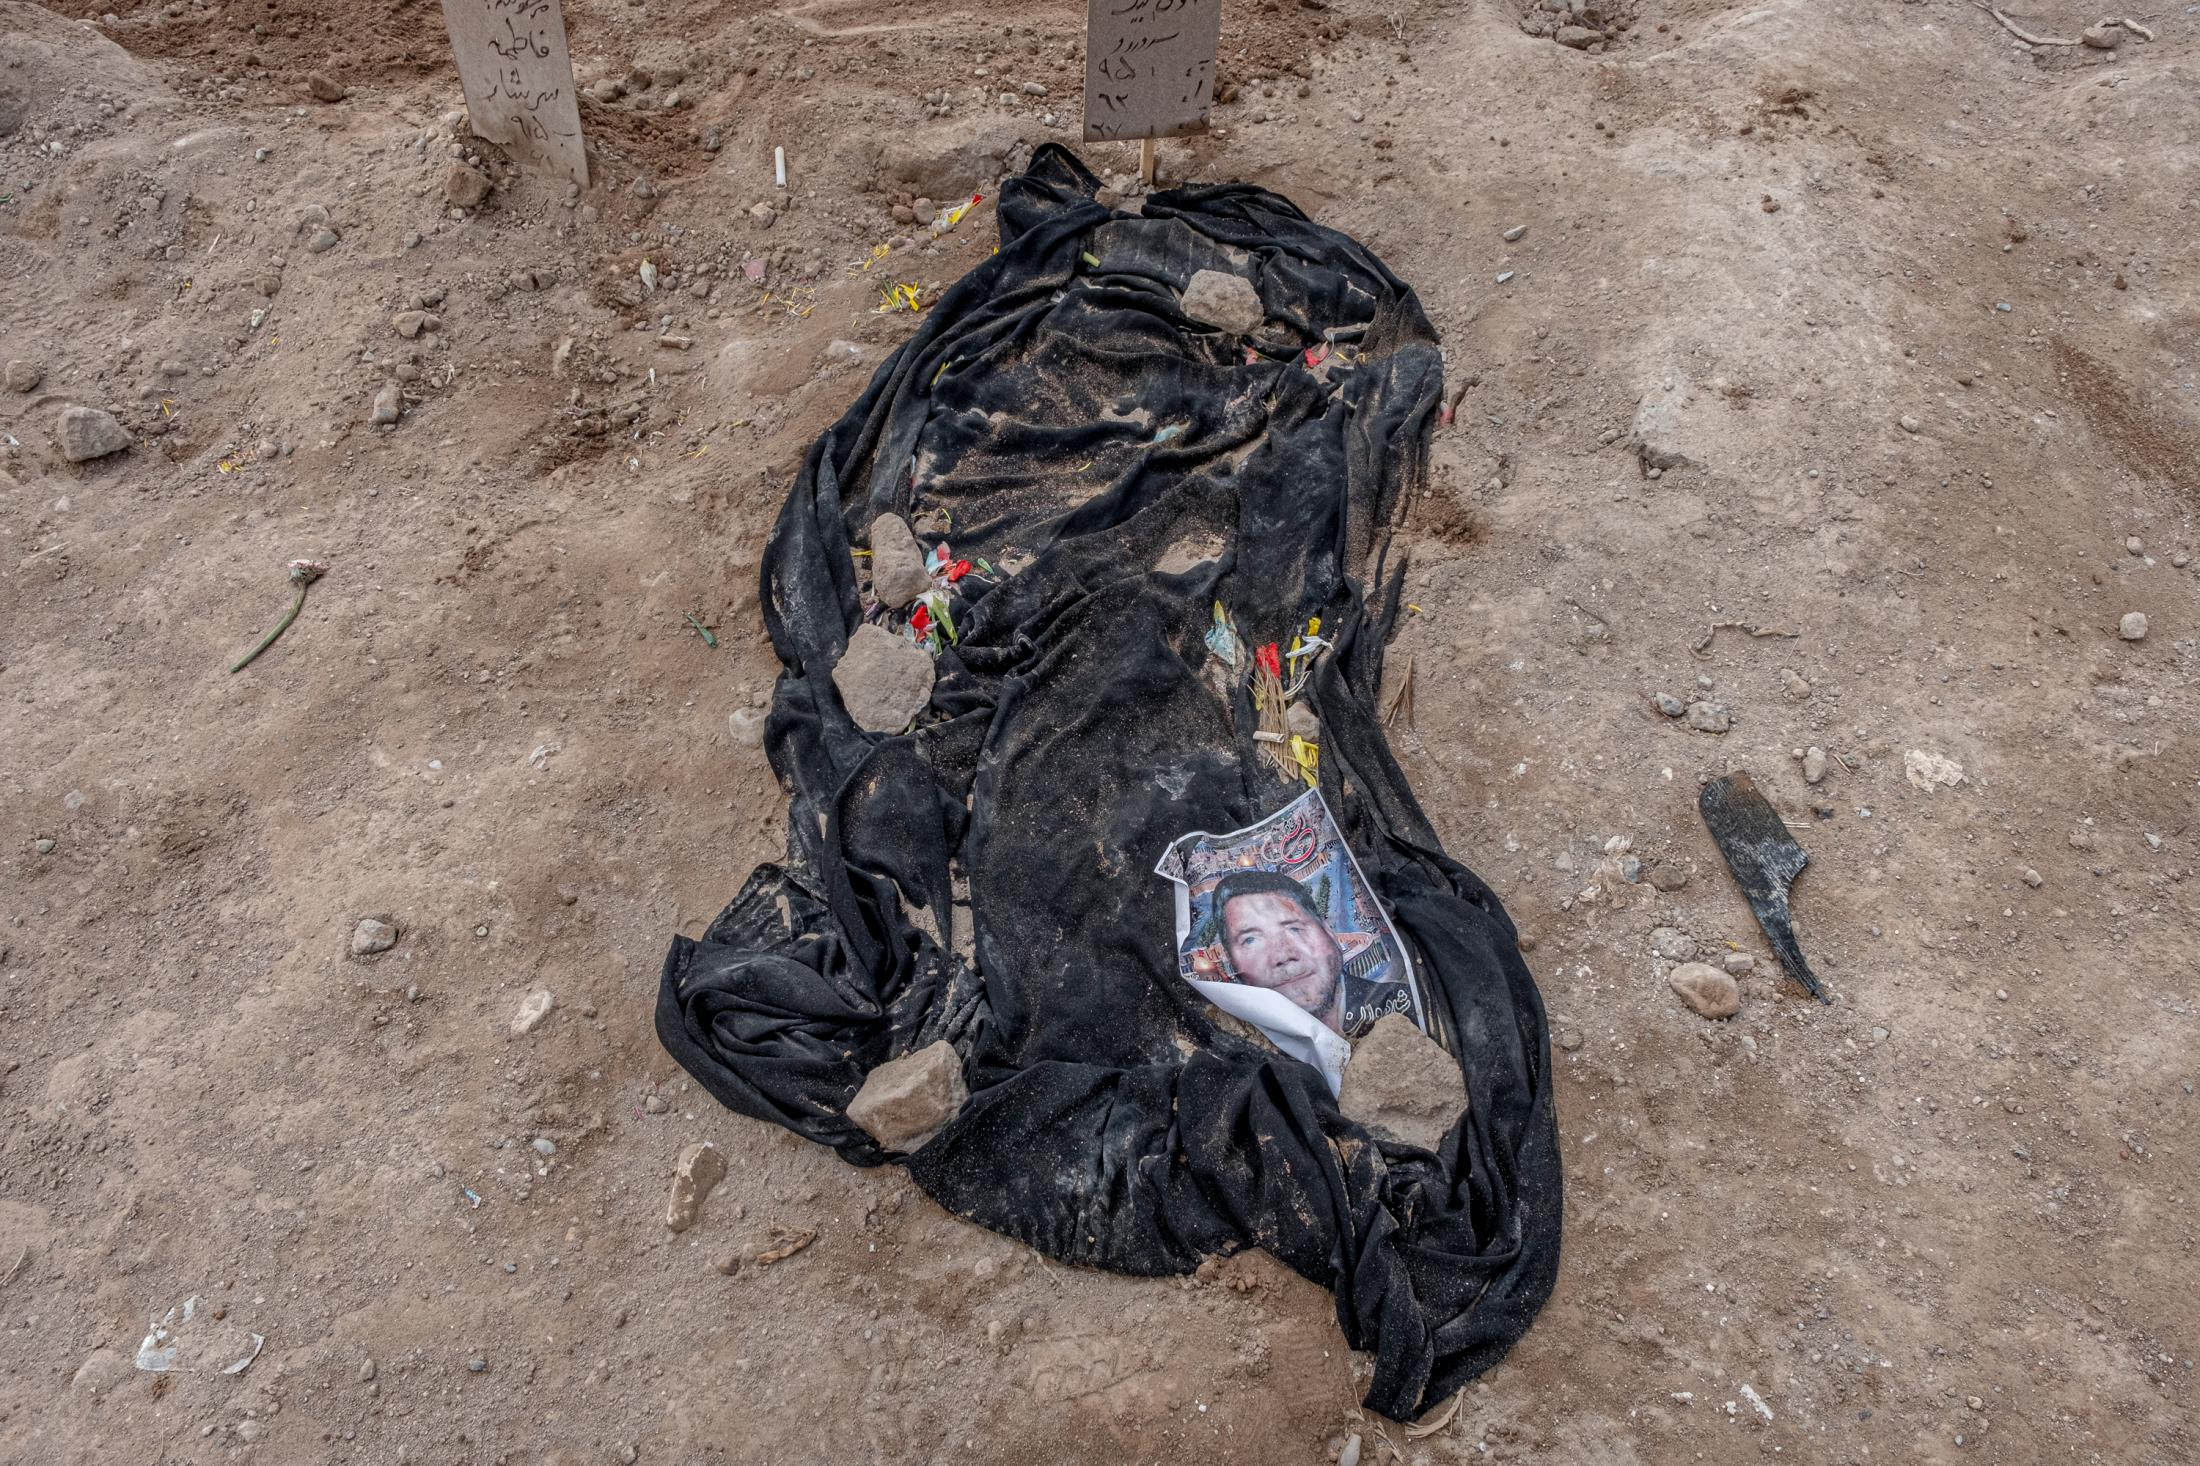 According to the cultural and religious rites of Azerbaijan, a black cloth is spread on the grave of the deceased as a sign of mourn. The installation of the tombstone takes several days due to the sensitivity and prevalence of the coronavirus.